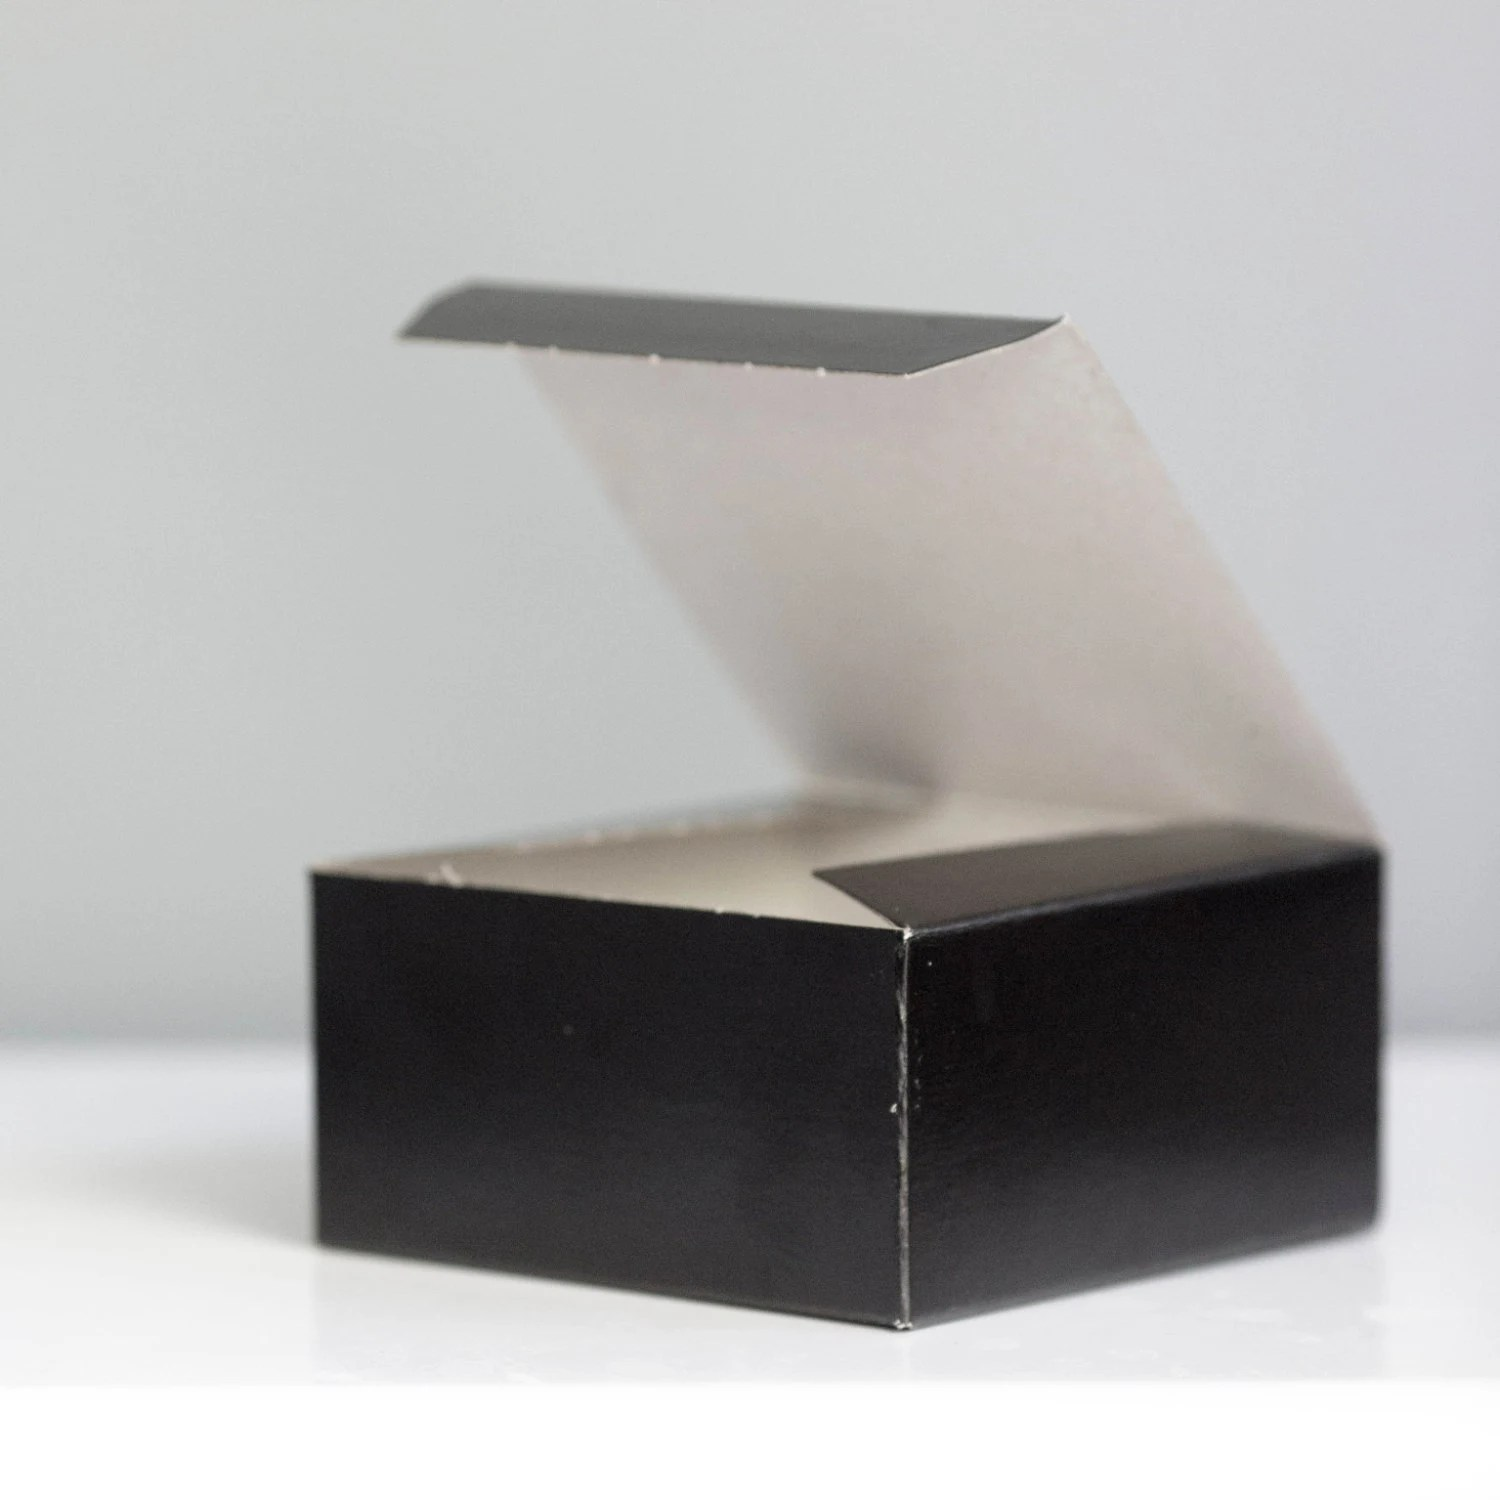 Black Gift Boxes Black Gift Boxes Set Of 10 4x4x2 Inch Black Tie Event Favor Box New Years Eve Box Little Black Box Valentines Day Gift Box